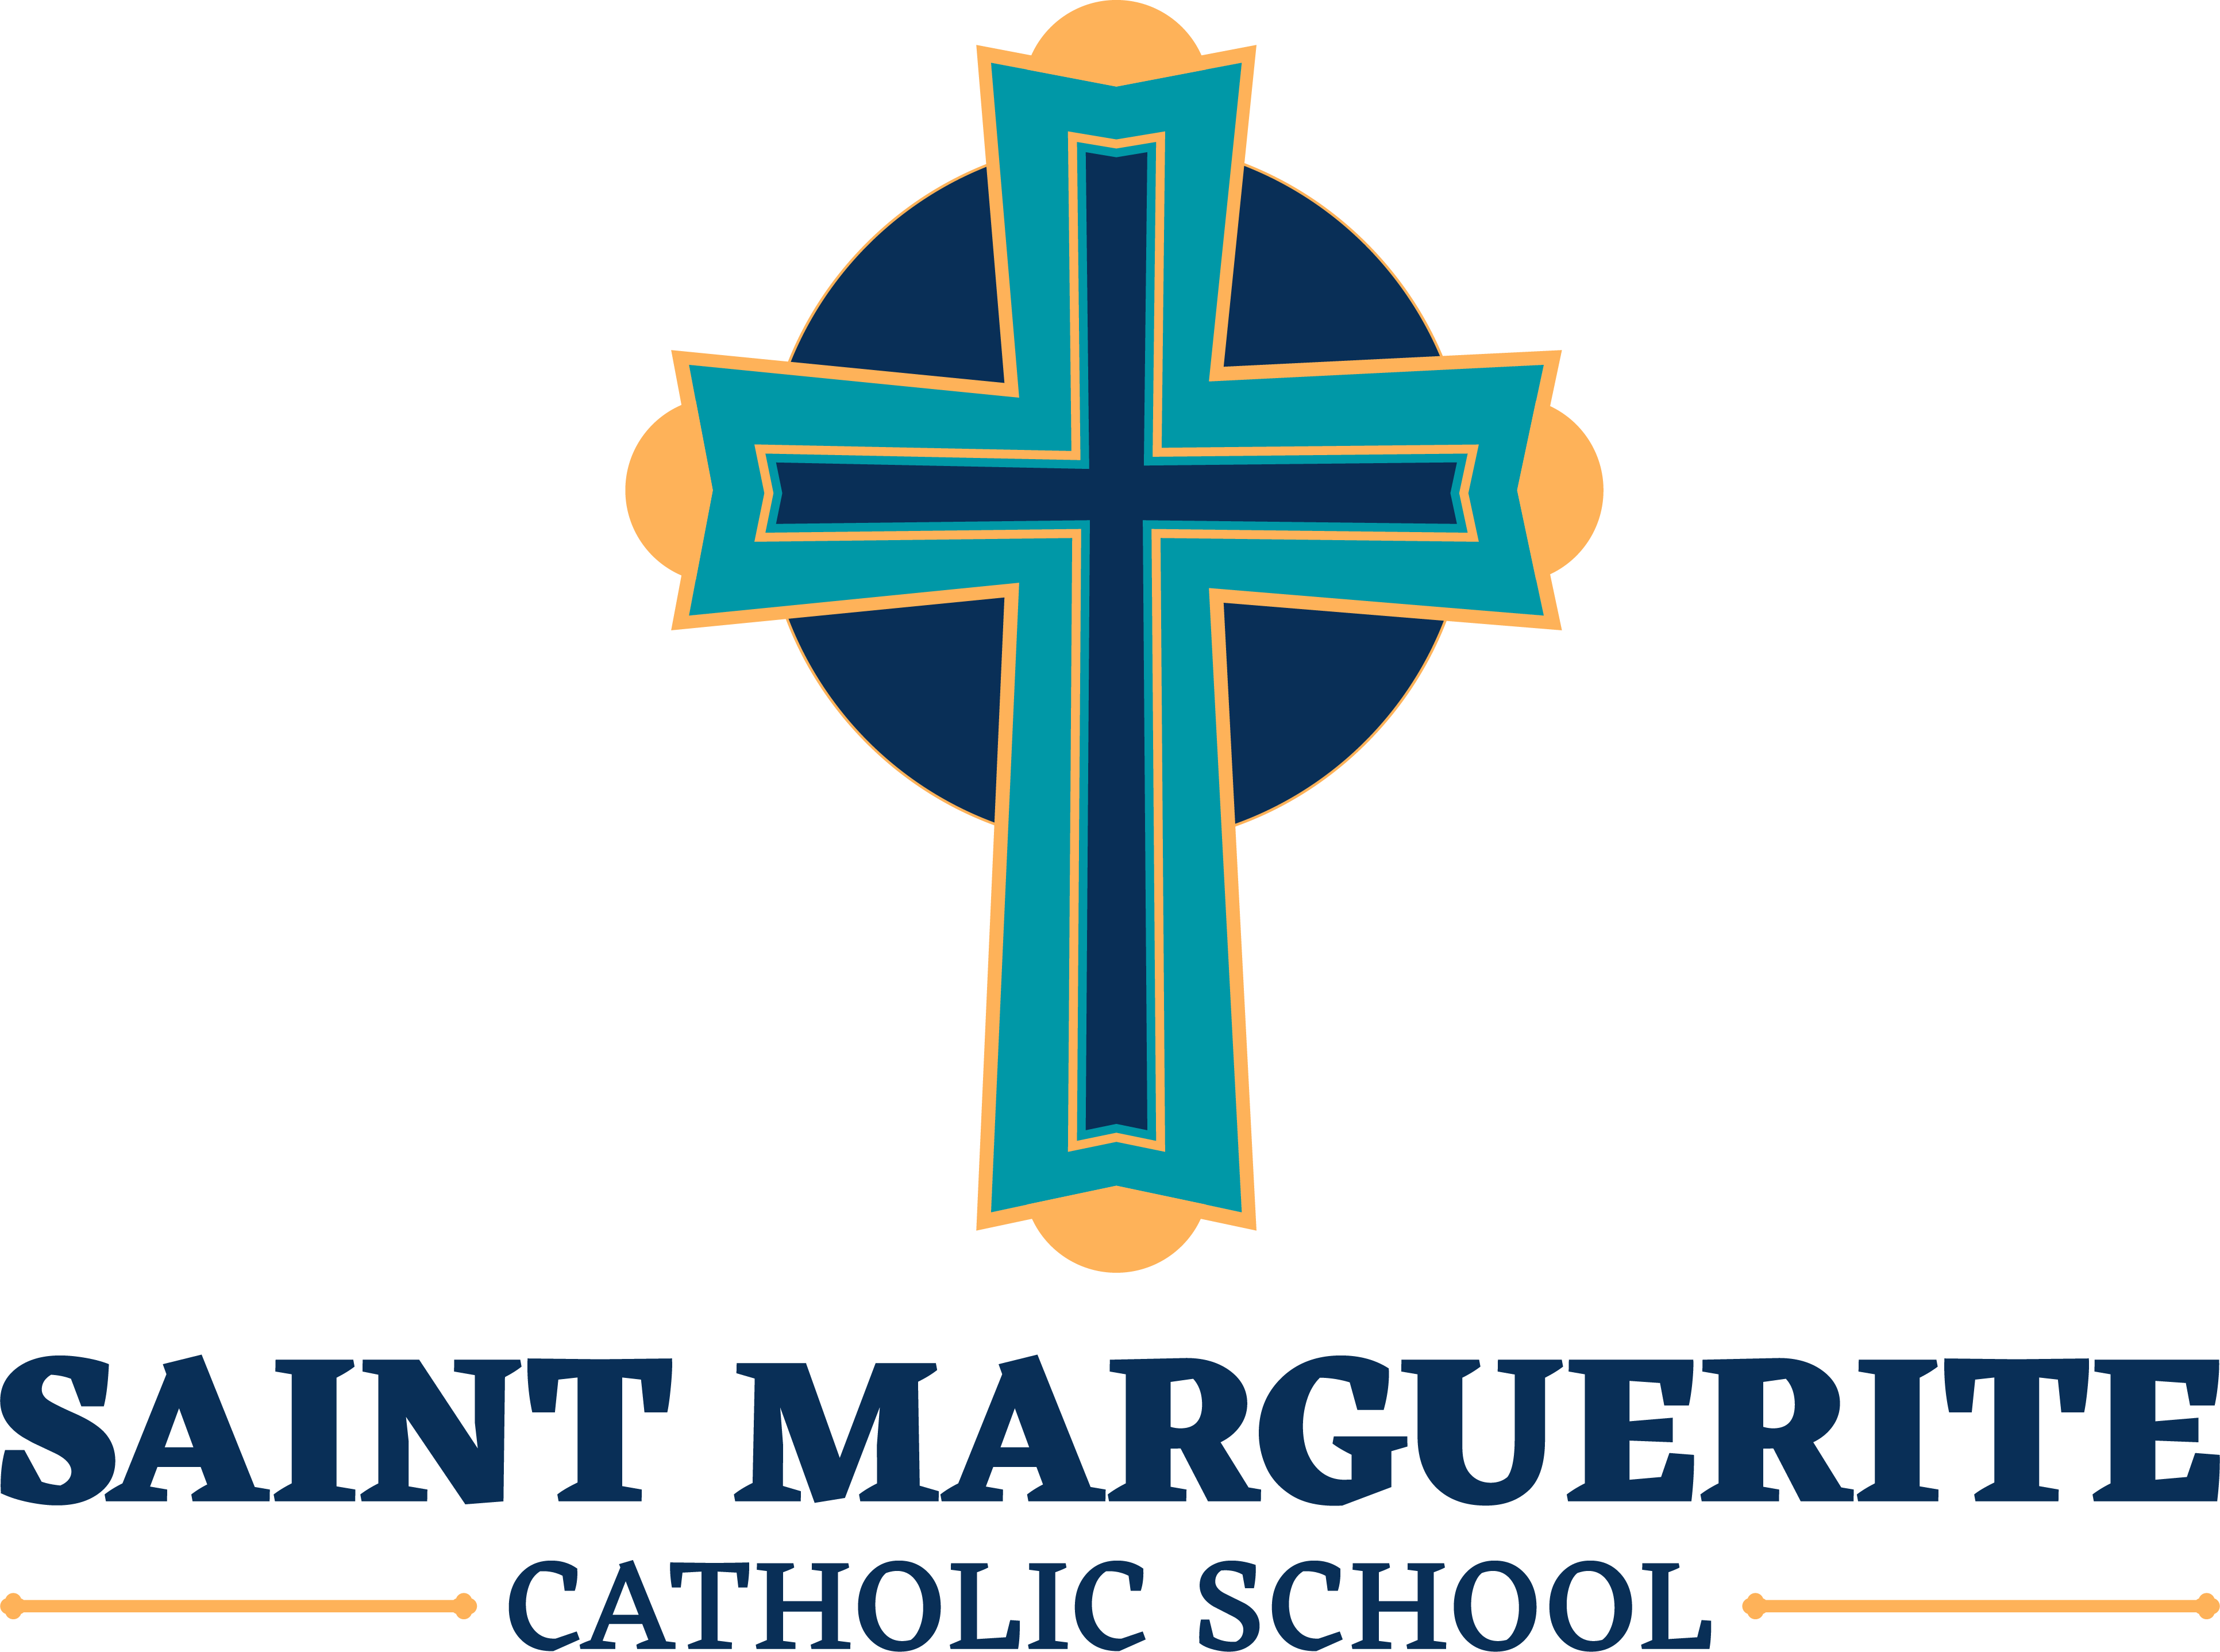 St-Marguerite_primary_logo.png